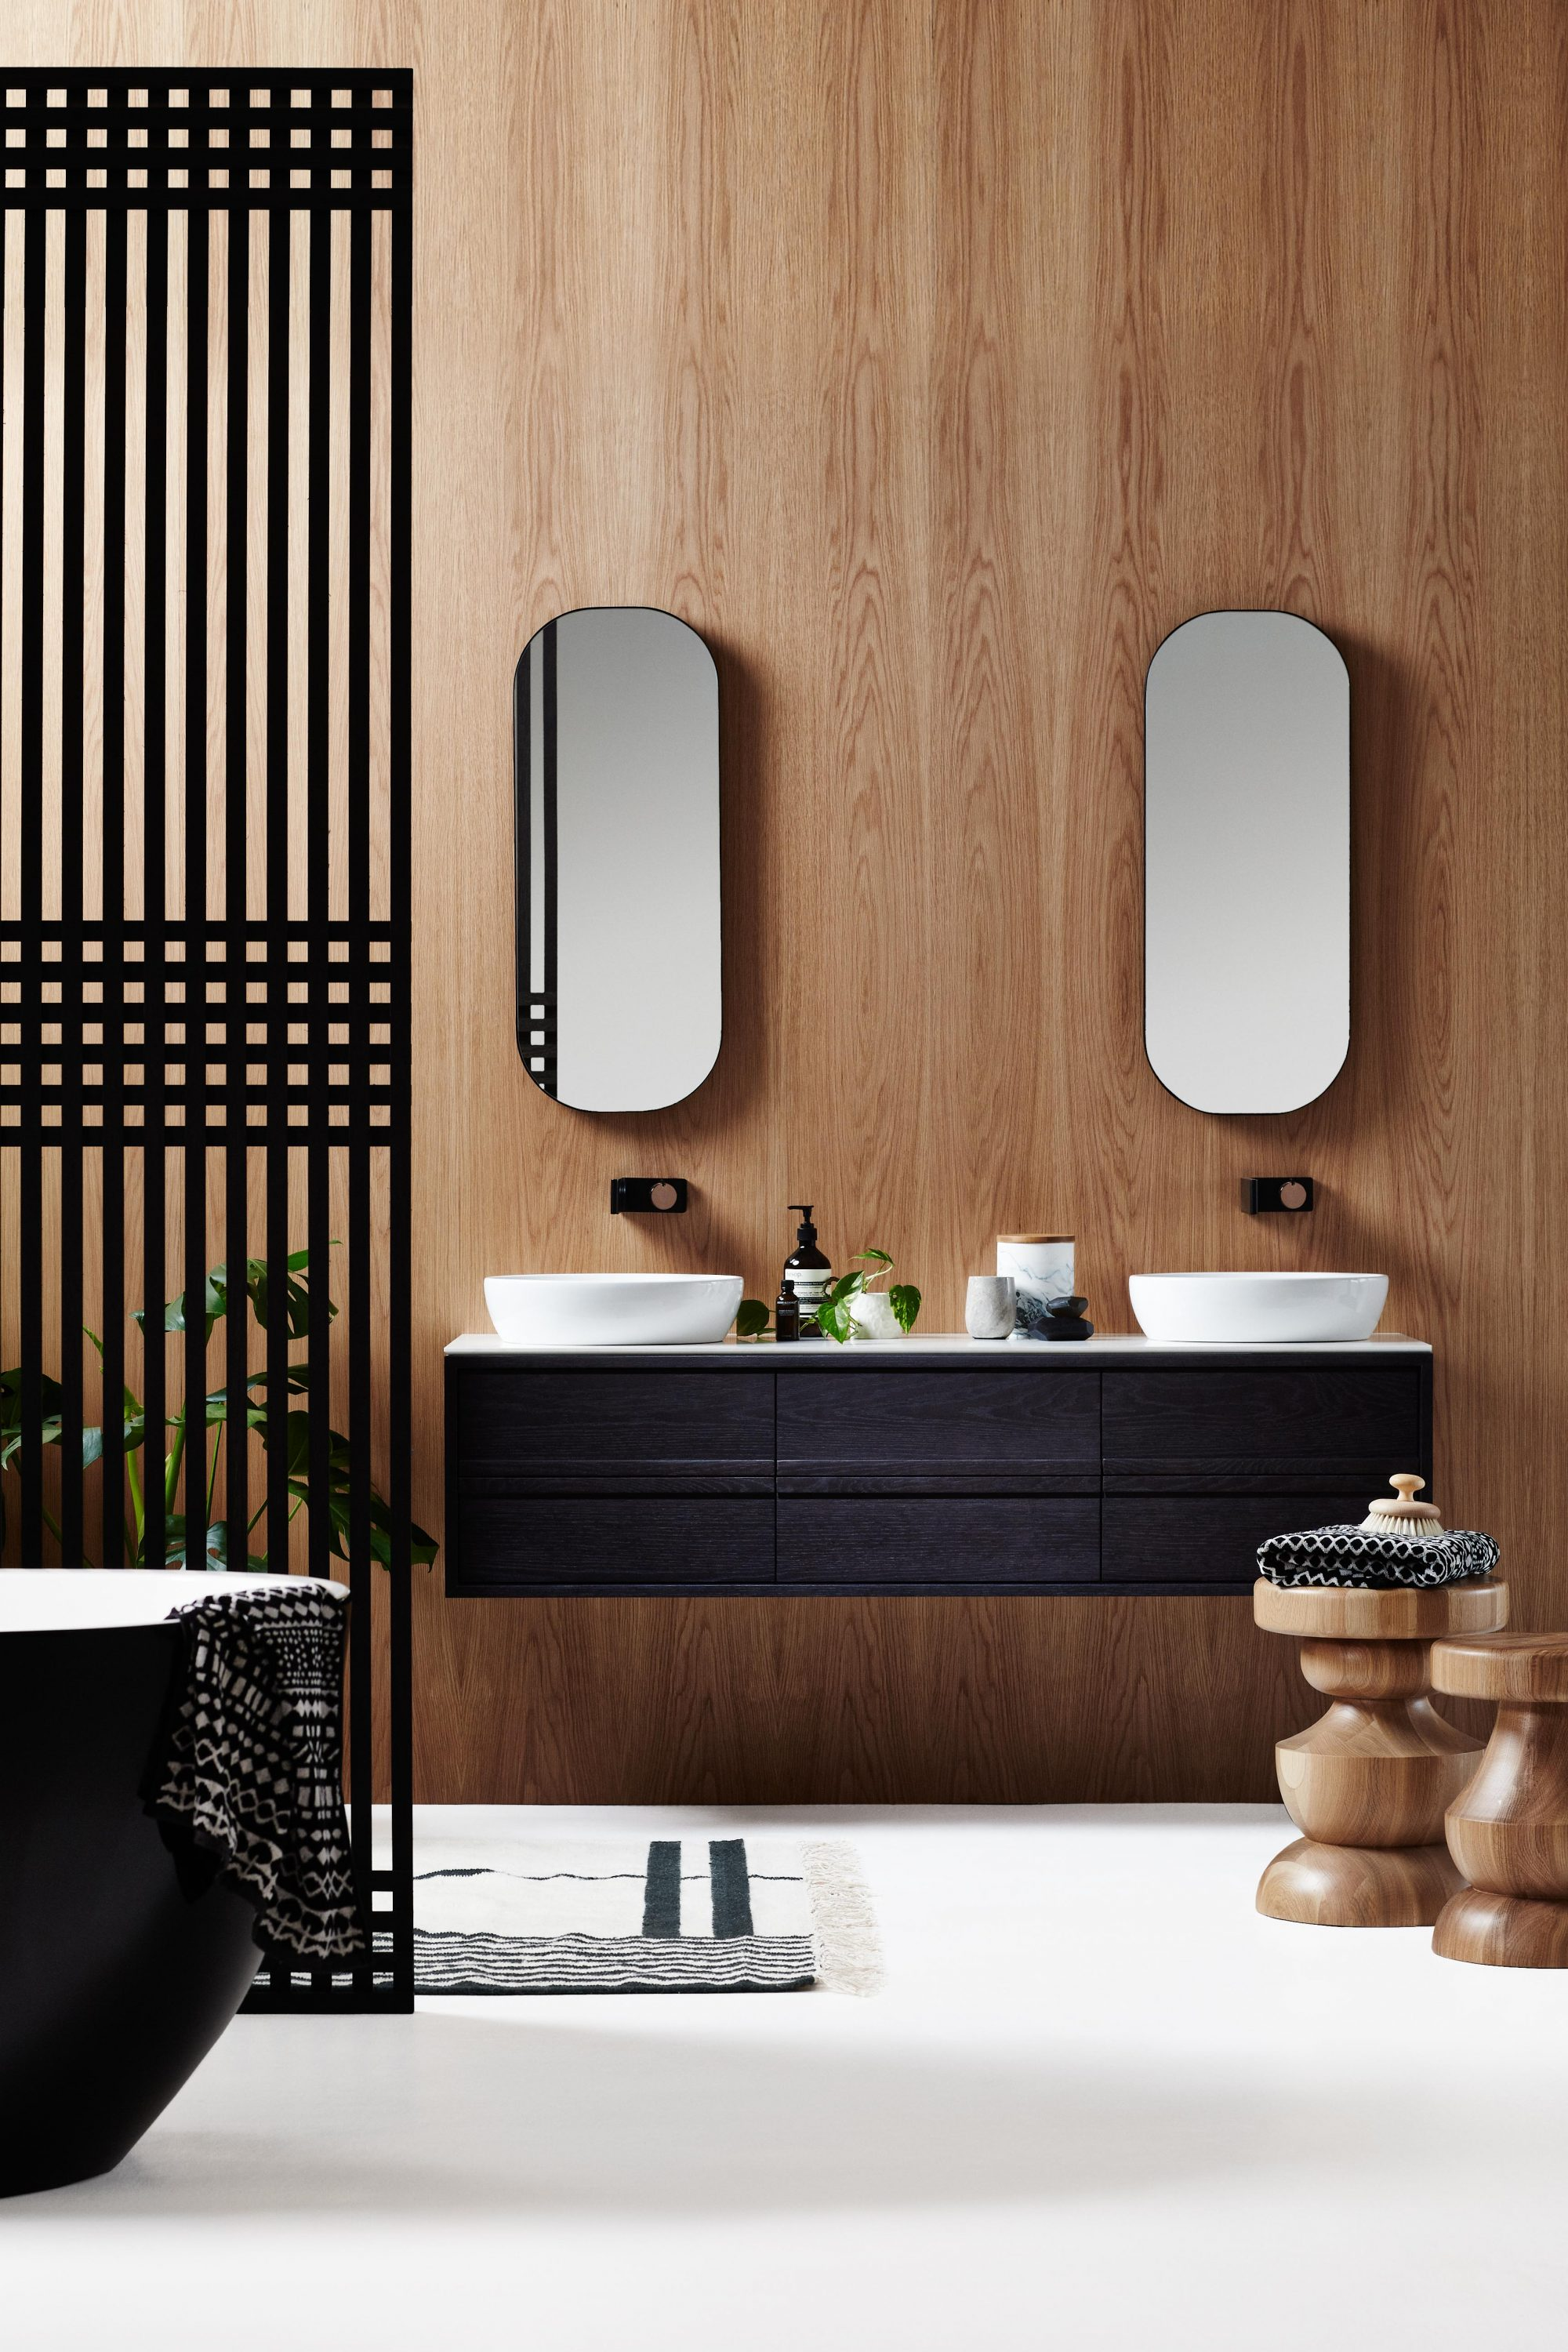 Stunning ISSY Z Drawer Vanity and ISSY Z Oval Mirror in situ front uc